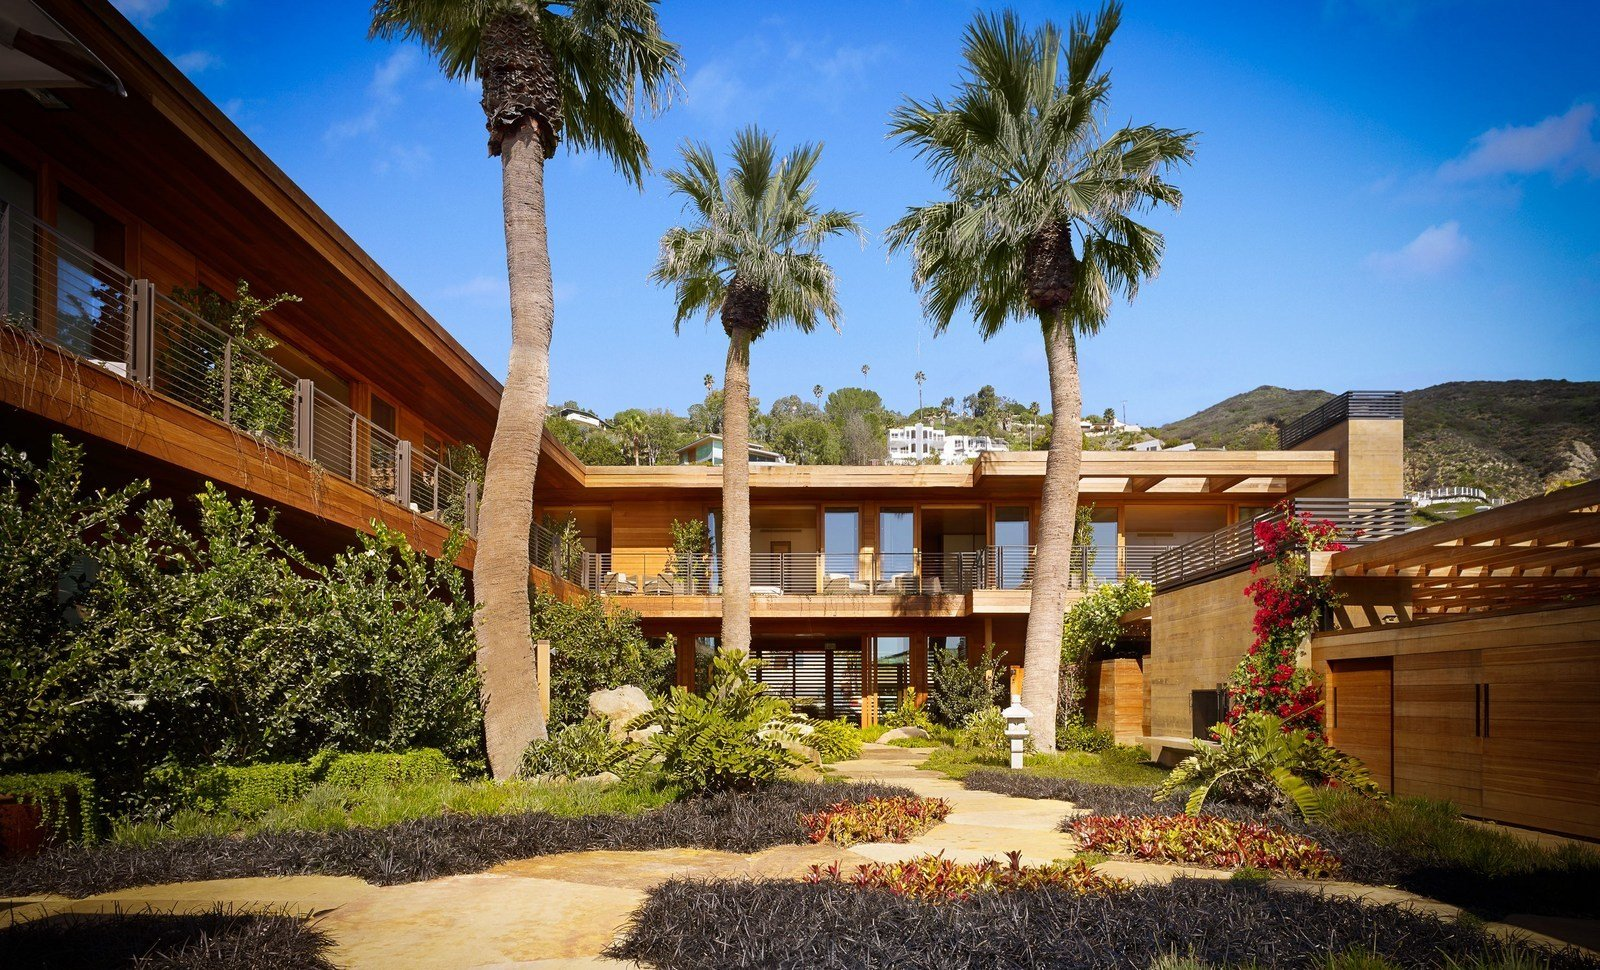 Outdoor, Garden, Shrubs, Gardens, Walkways, Trees, Landscape Lighting, Boulders, and Grass No two suites are the same, and the modernized rooms are artfully designed to incorporate Japanese elements, such as tatami mats and shoji screens.   Best Photos from A Former Beach Motel in Malibu Is Reborn as the Japanese-Inspired Nobu Ryokan